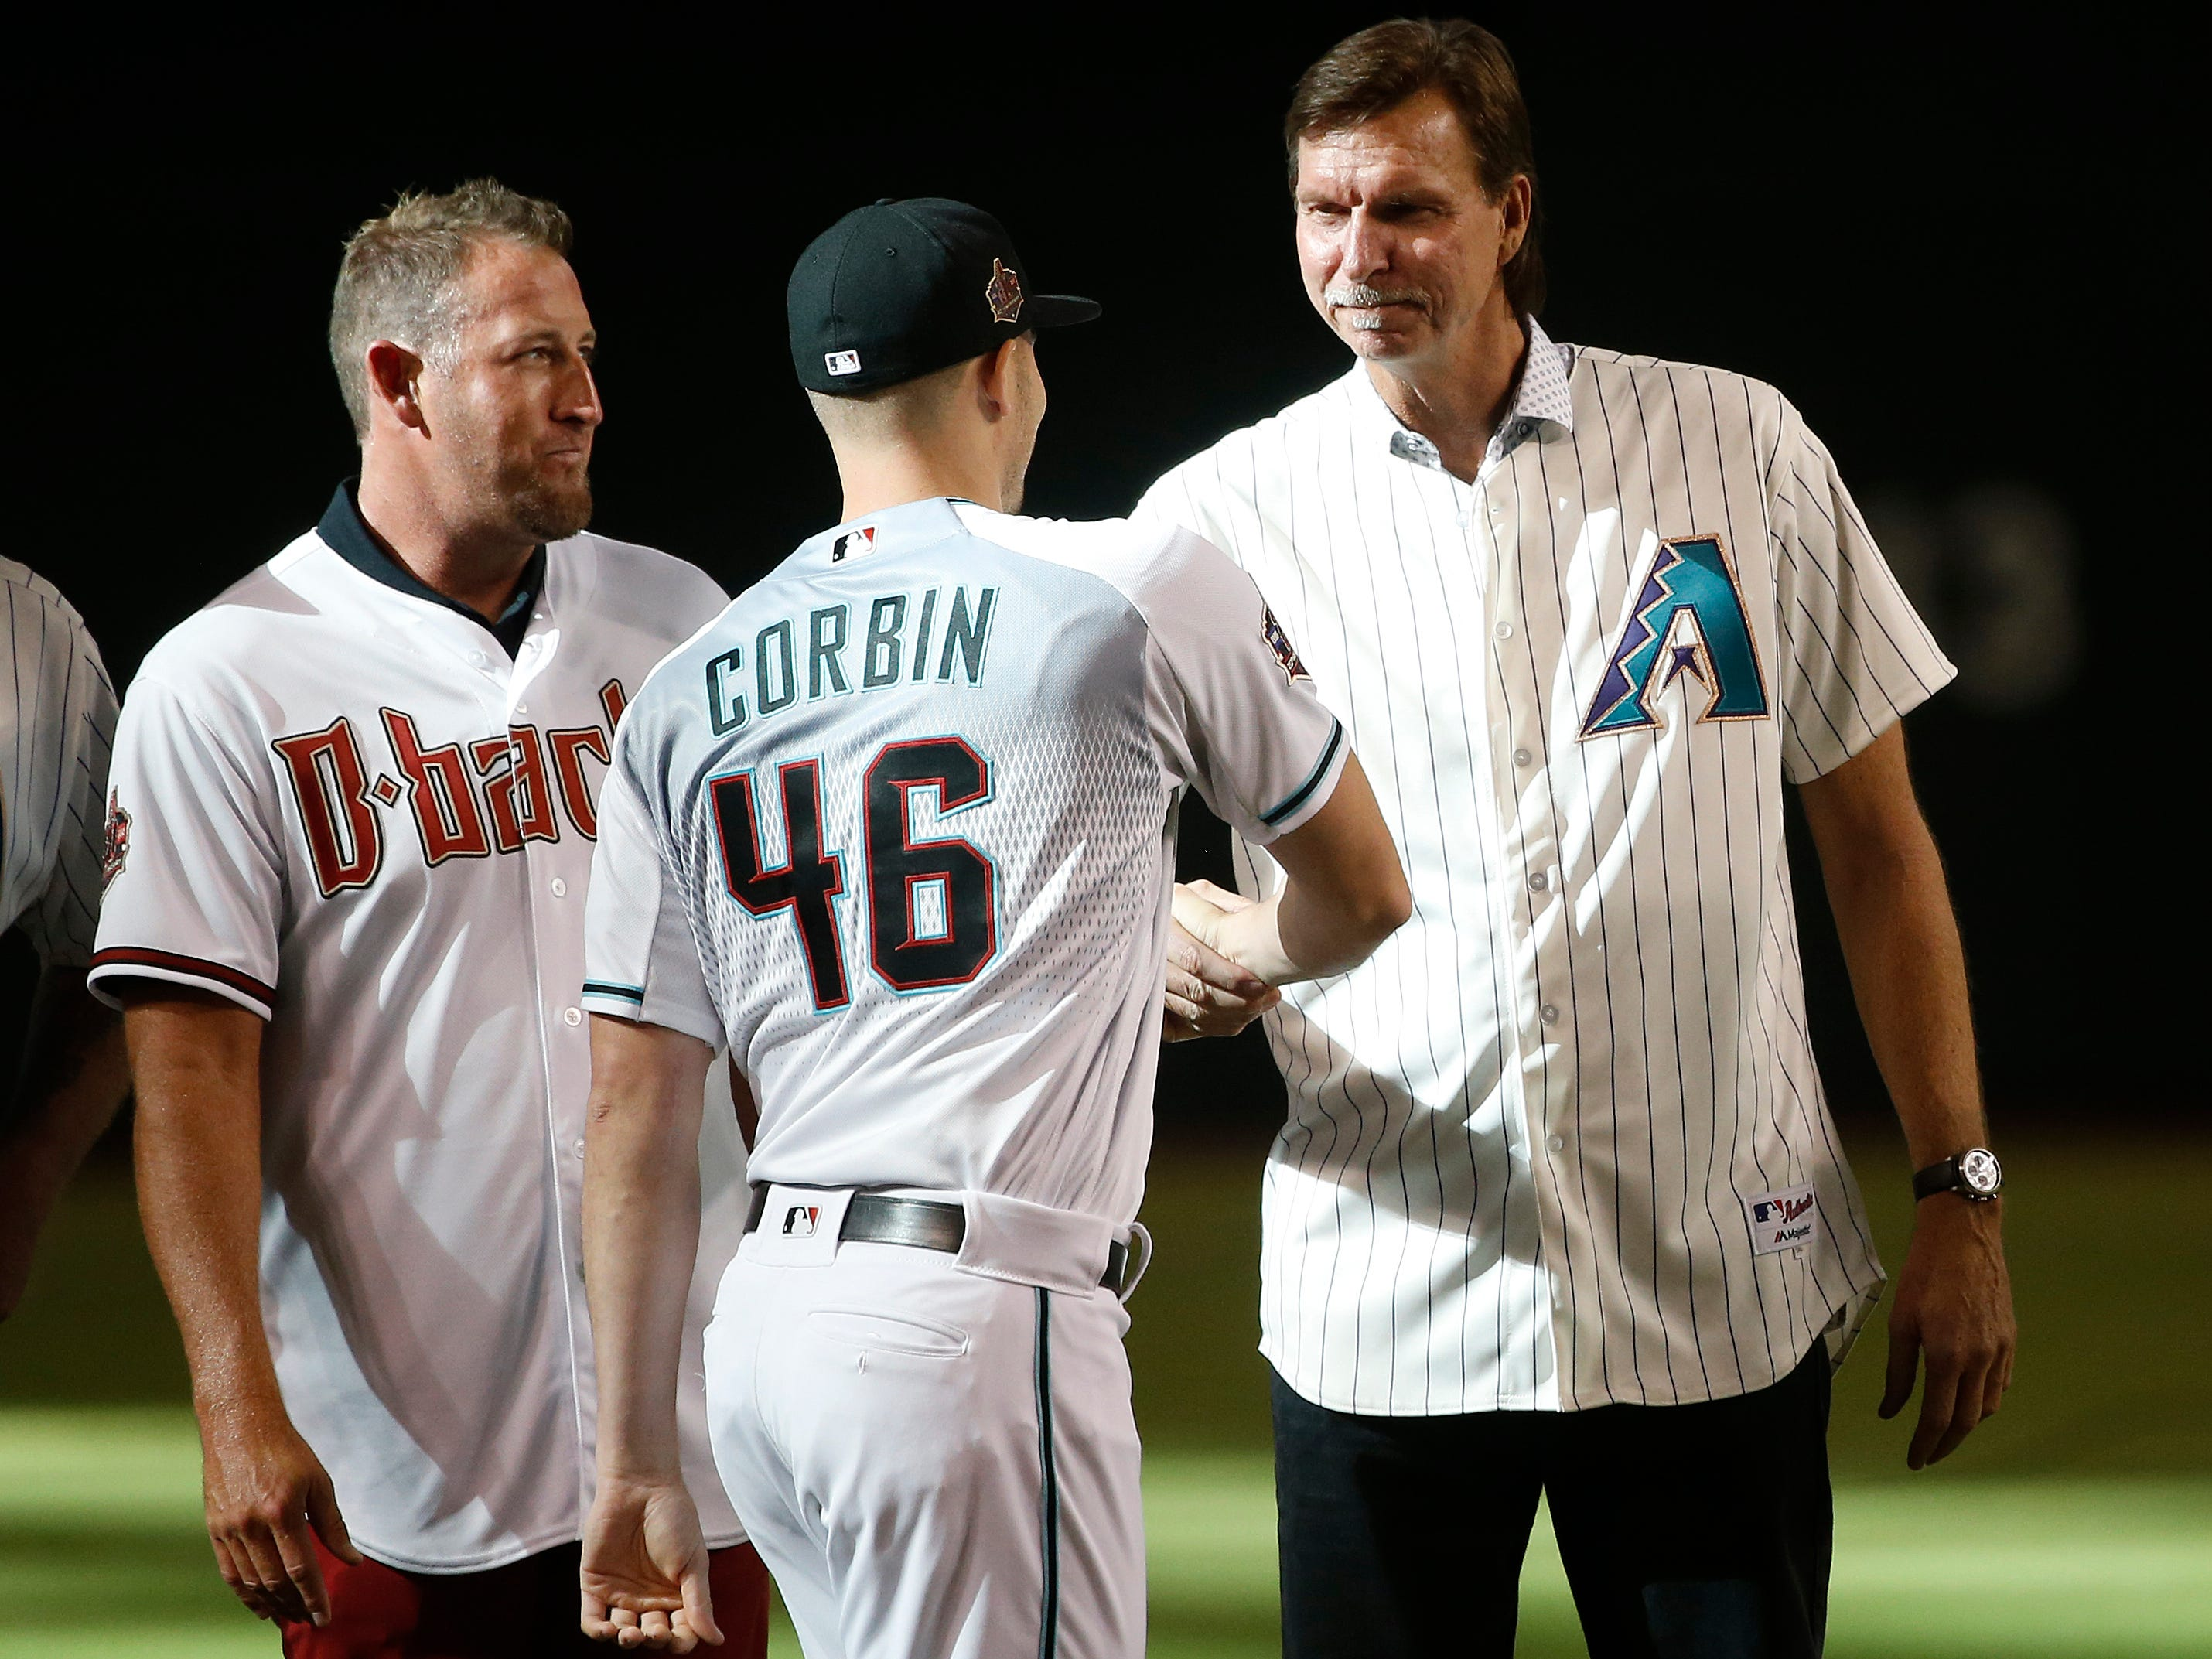 Diamondbacks legend Randy Johnson (R) greets current pitcher Patrick Corbin (46) at the mound as the players become members of the Diamondbacks 20th Anniversary team prior to a Diamondbacks game at Chase Field in Phoenix, Ariz. on Aug. 4, 2018.